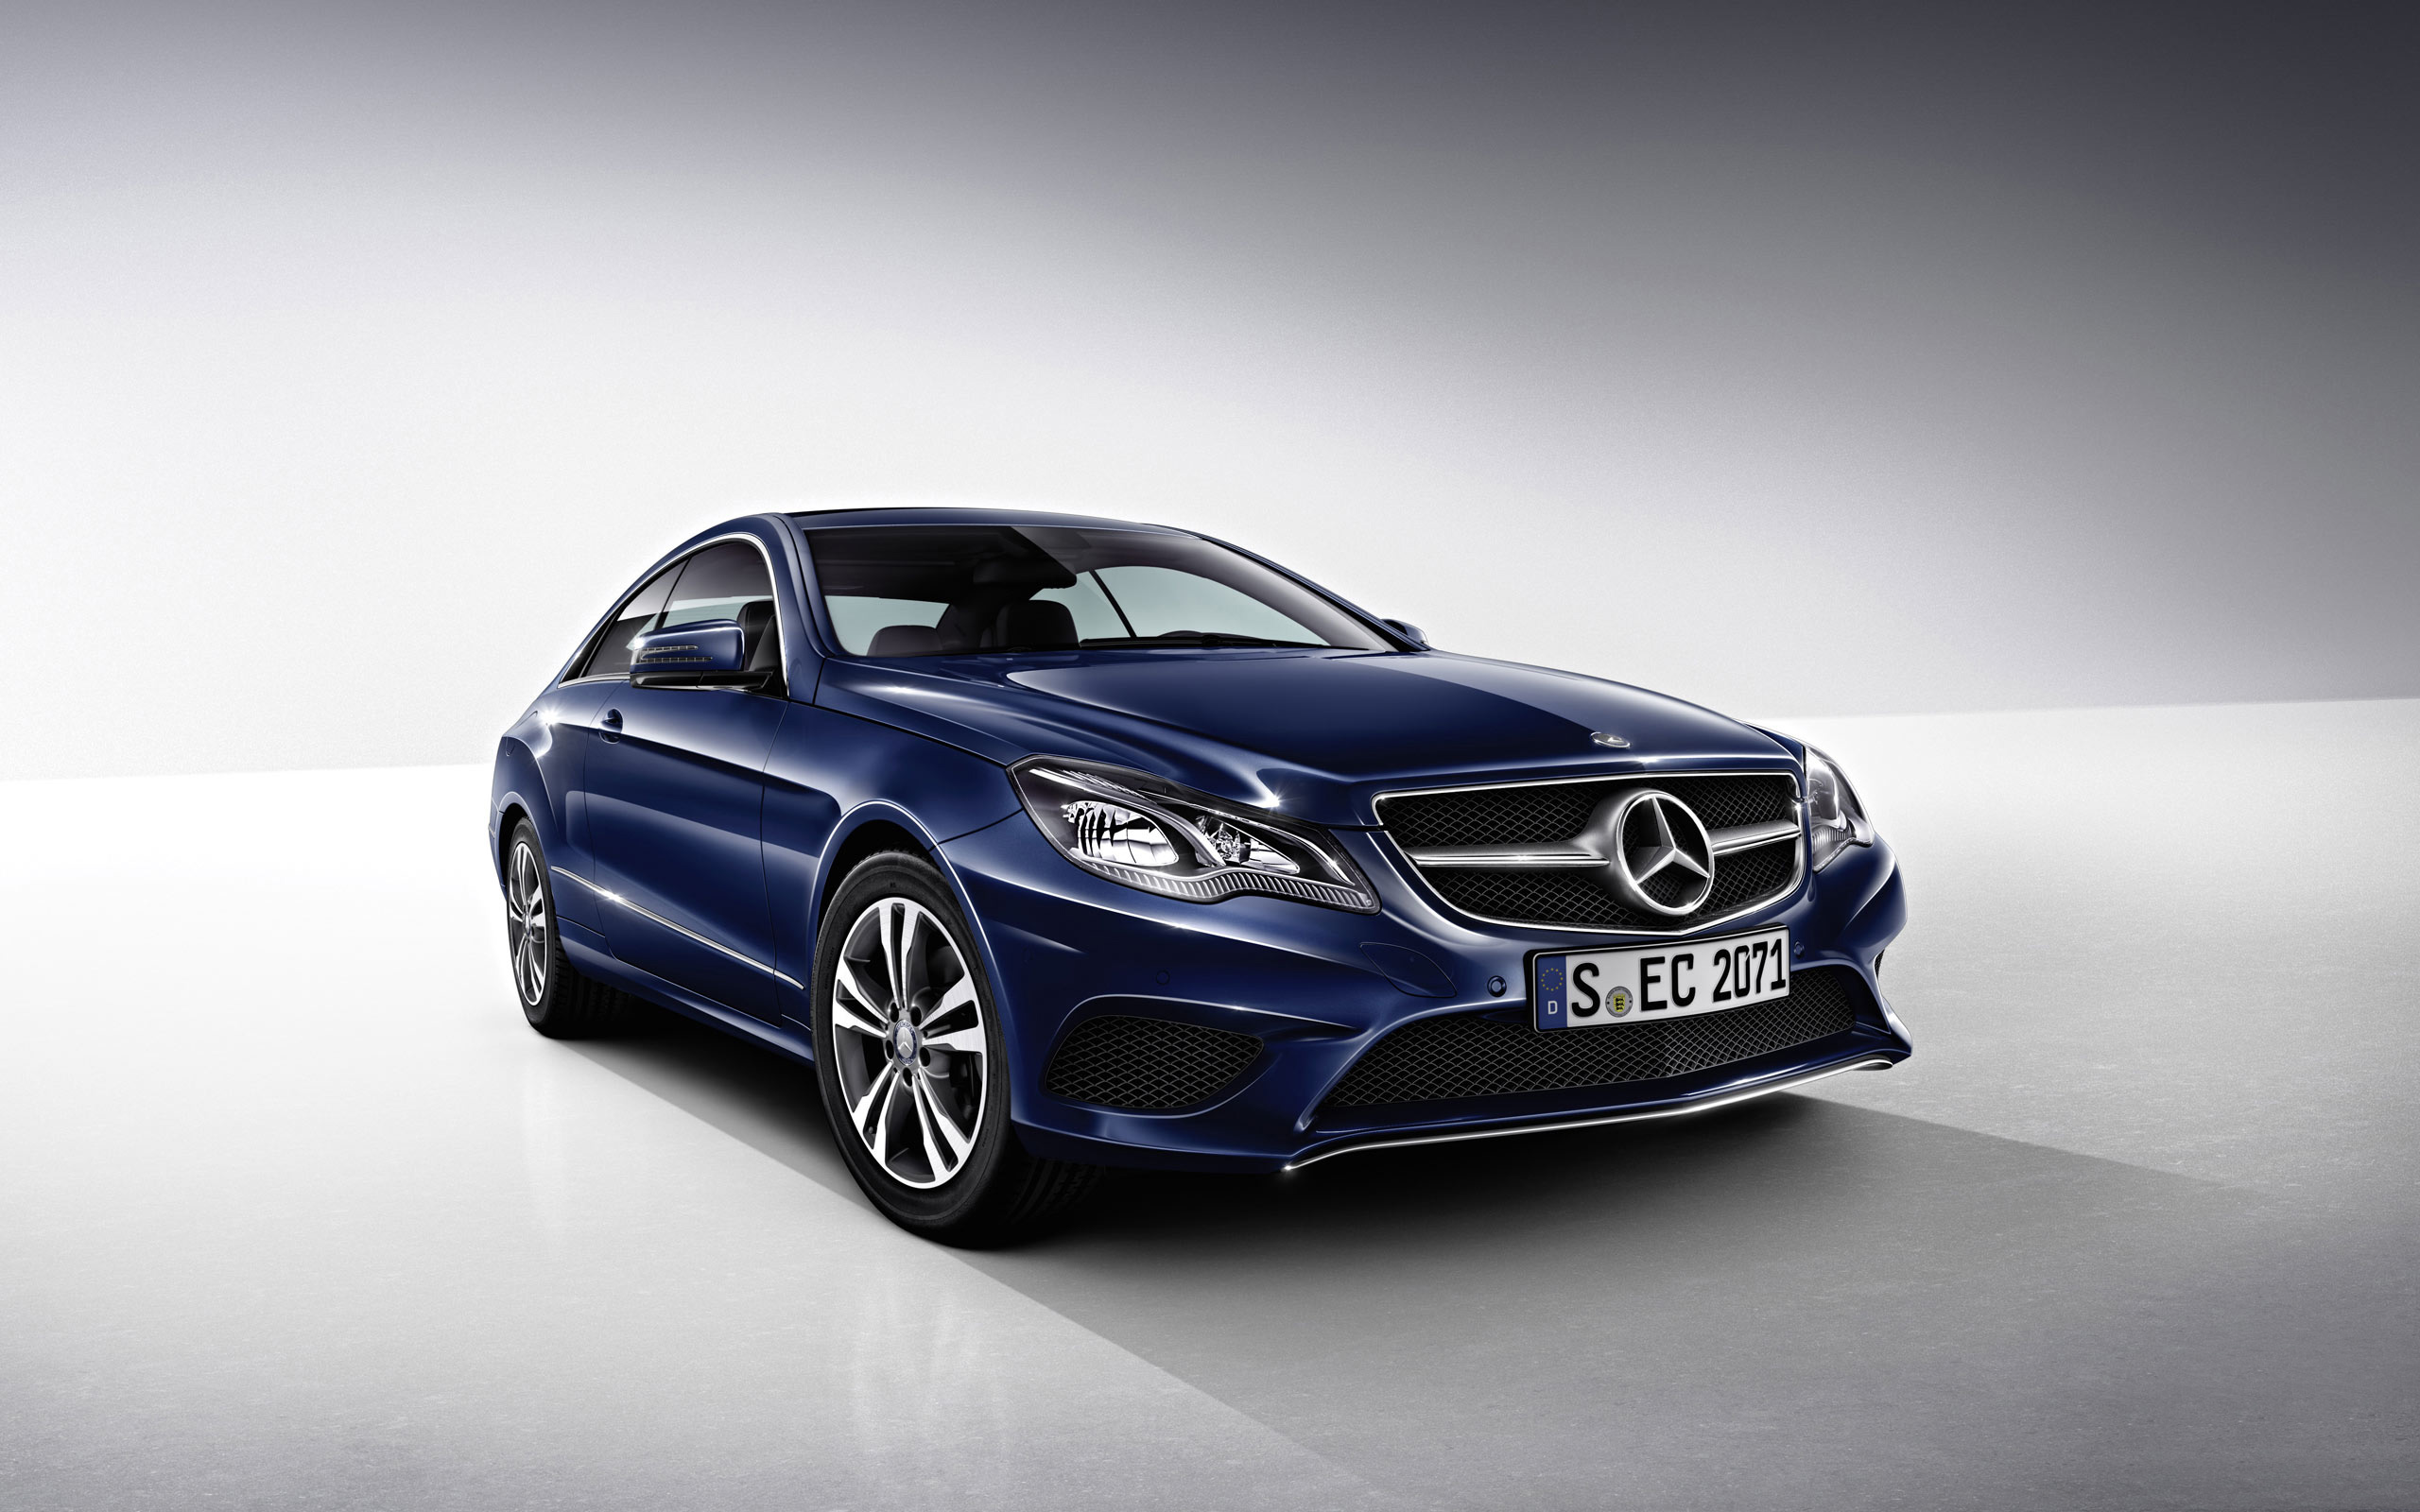 2014 mercedes benz e class coupe wallpaper hd car wallpapers id 3402. Black Bedroom Furniture Sets. Home Design Ideas